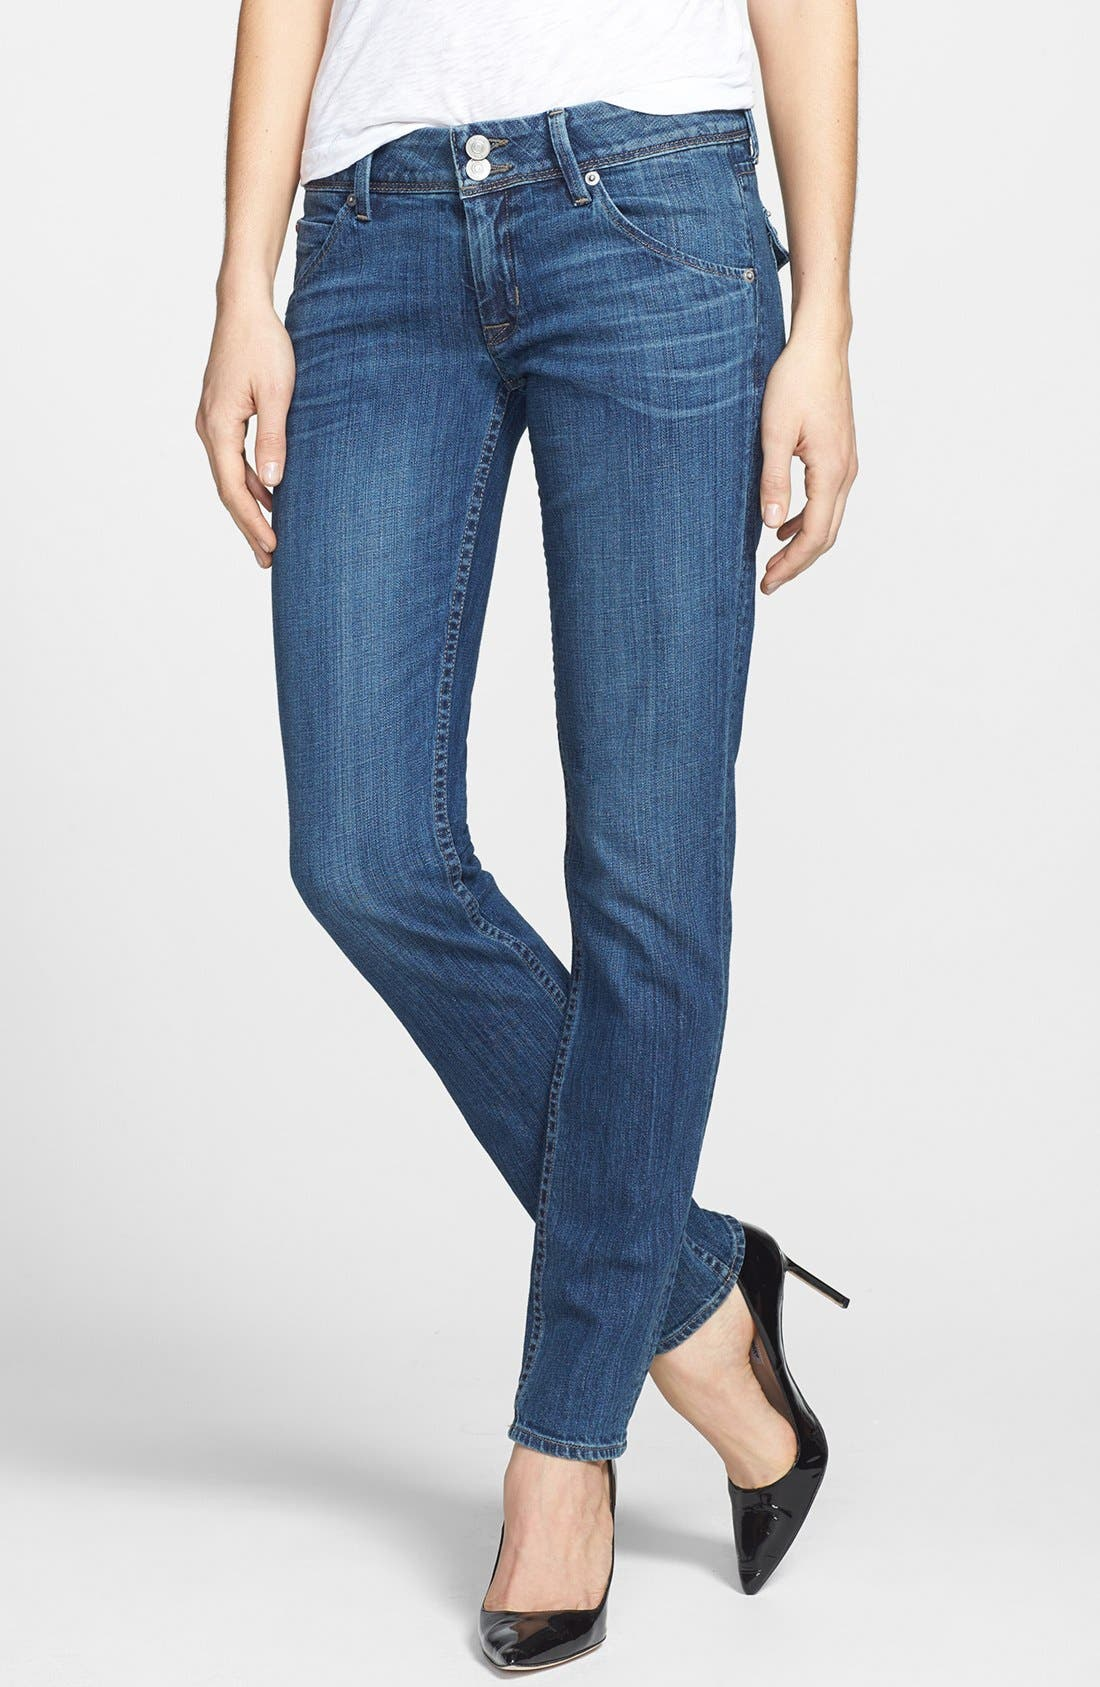 Alternate Image 1 Selected - Hudson Jeans 'Collin' Skinny Jeans (Prodigy)